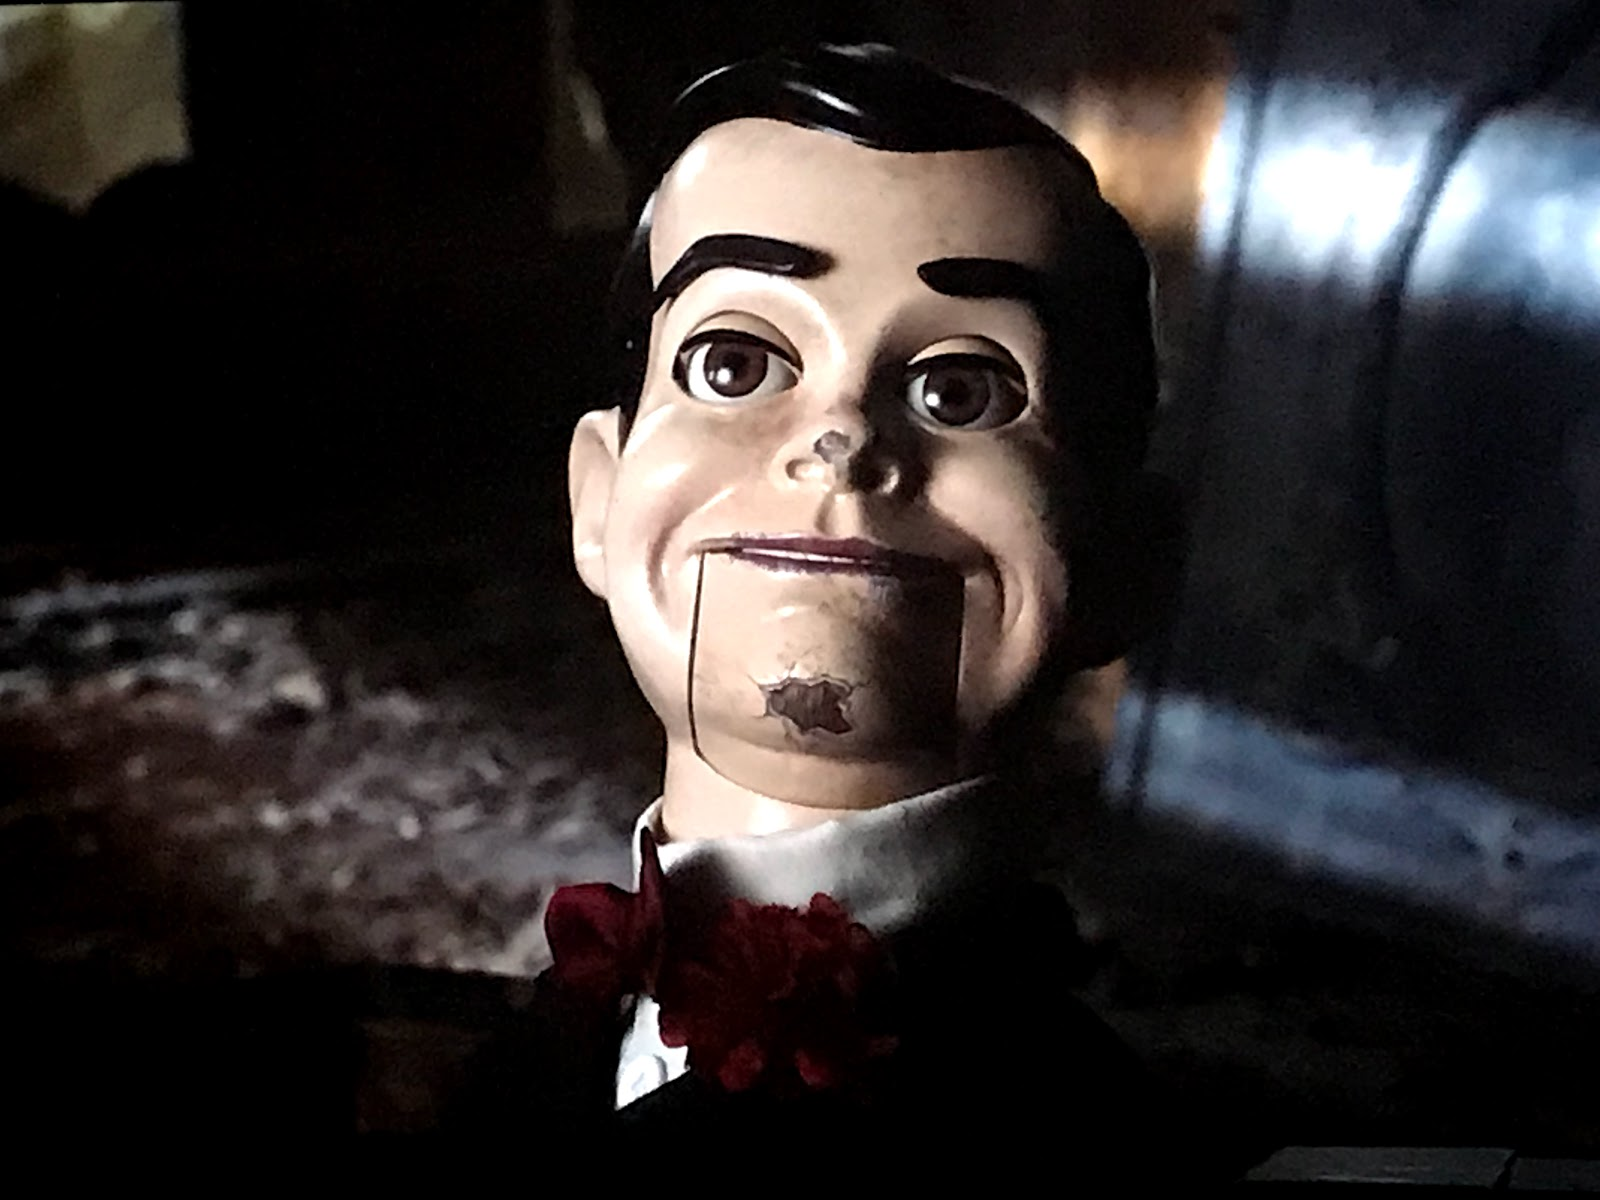 Image: Slappythe puppet  From The Movie Goose Bumps 2: Woman takes family to see the new goose bumps movie by R.L Stine for Halloween.: Weekend bits and favorites